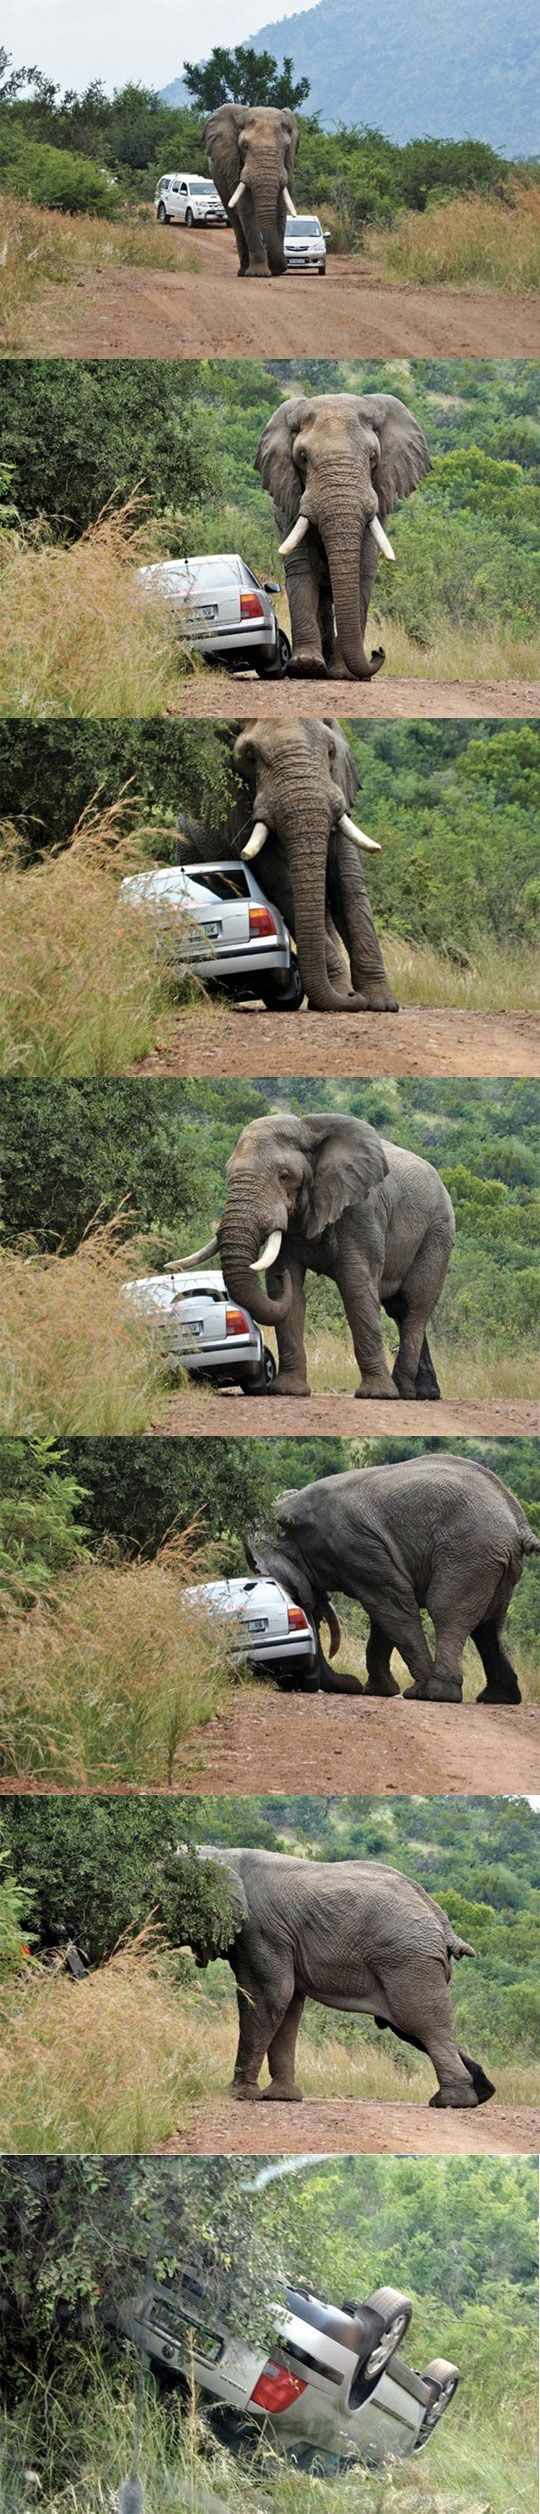 Never honk at an elephant...elephant road rage